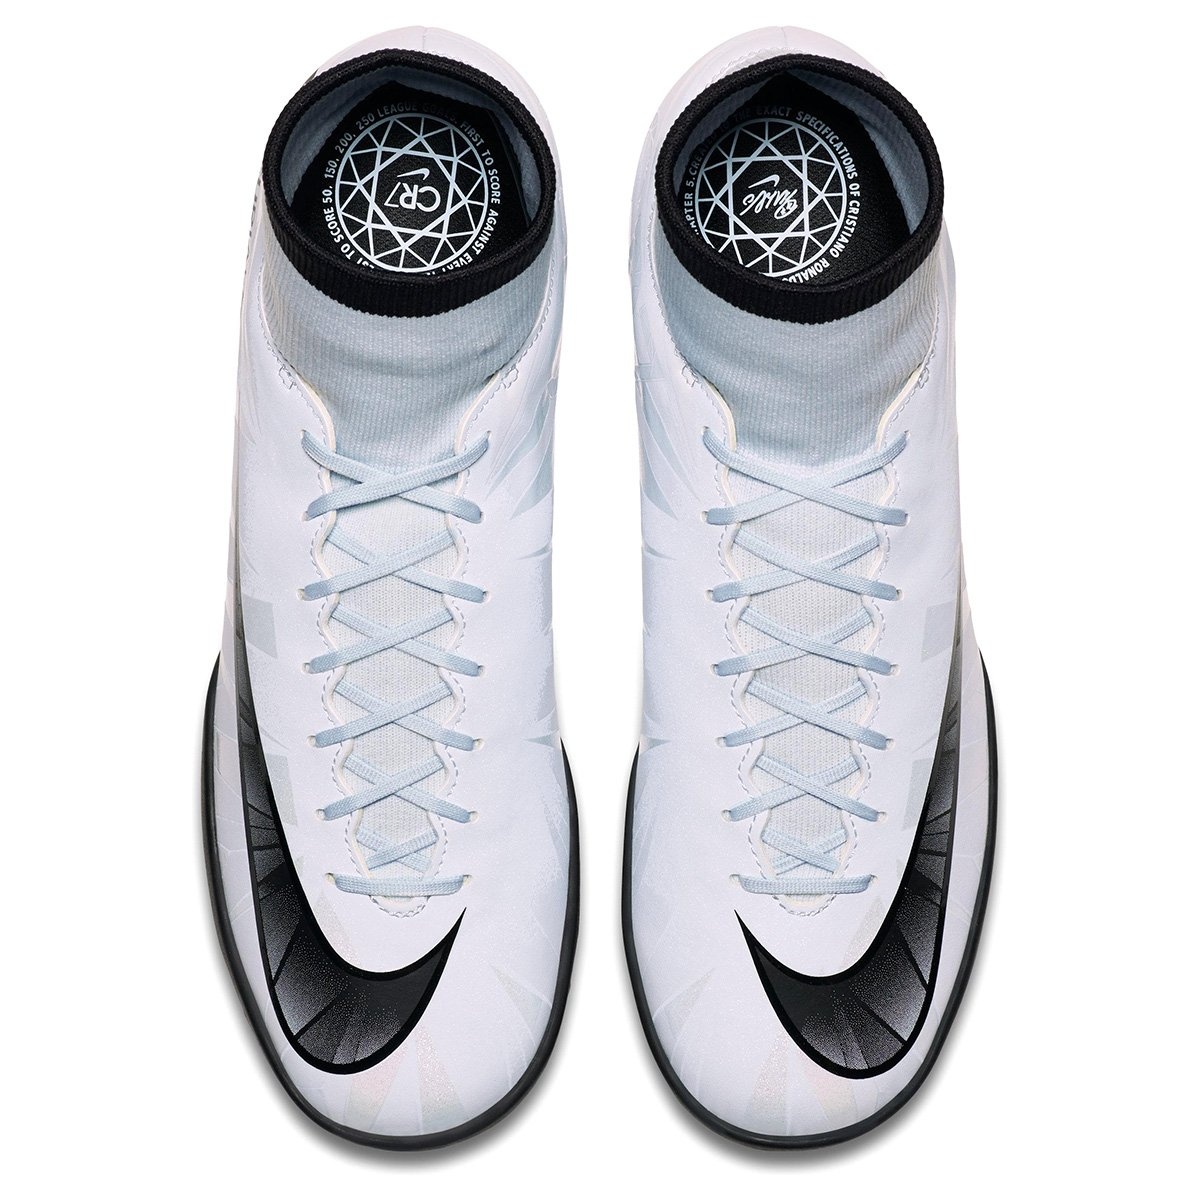 8ad8edd370 ... low price chuteira society nike mercurial victory 6 cr7 df tf masculina  0de97 ba9be